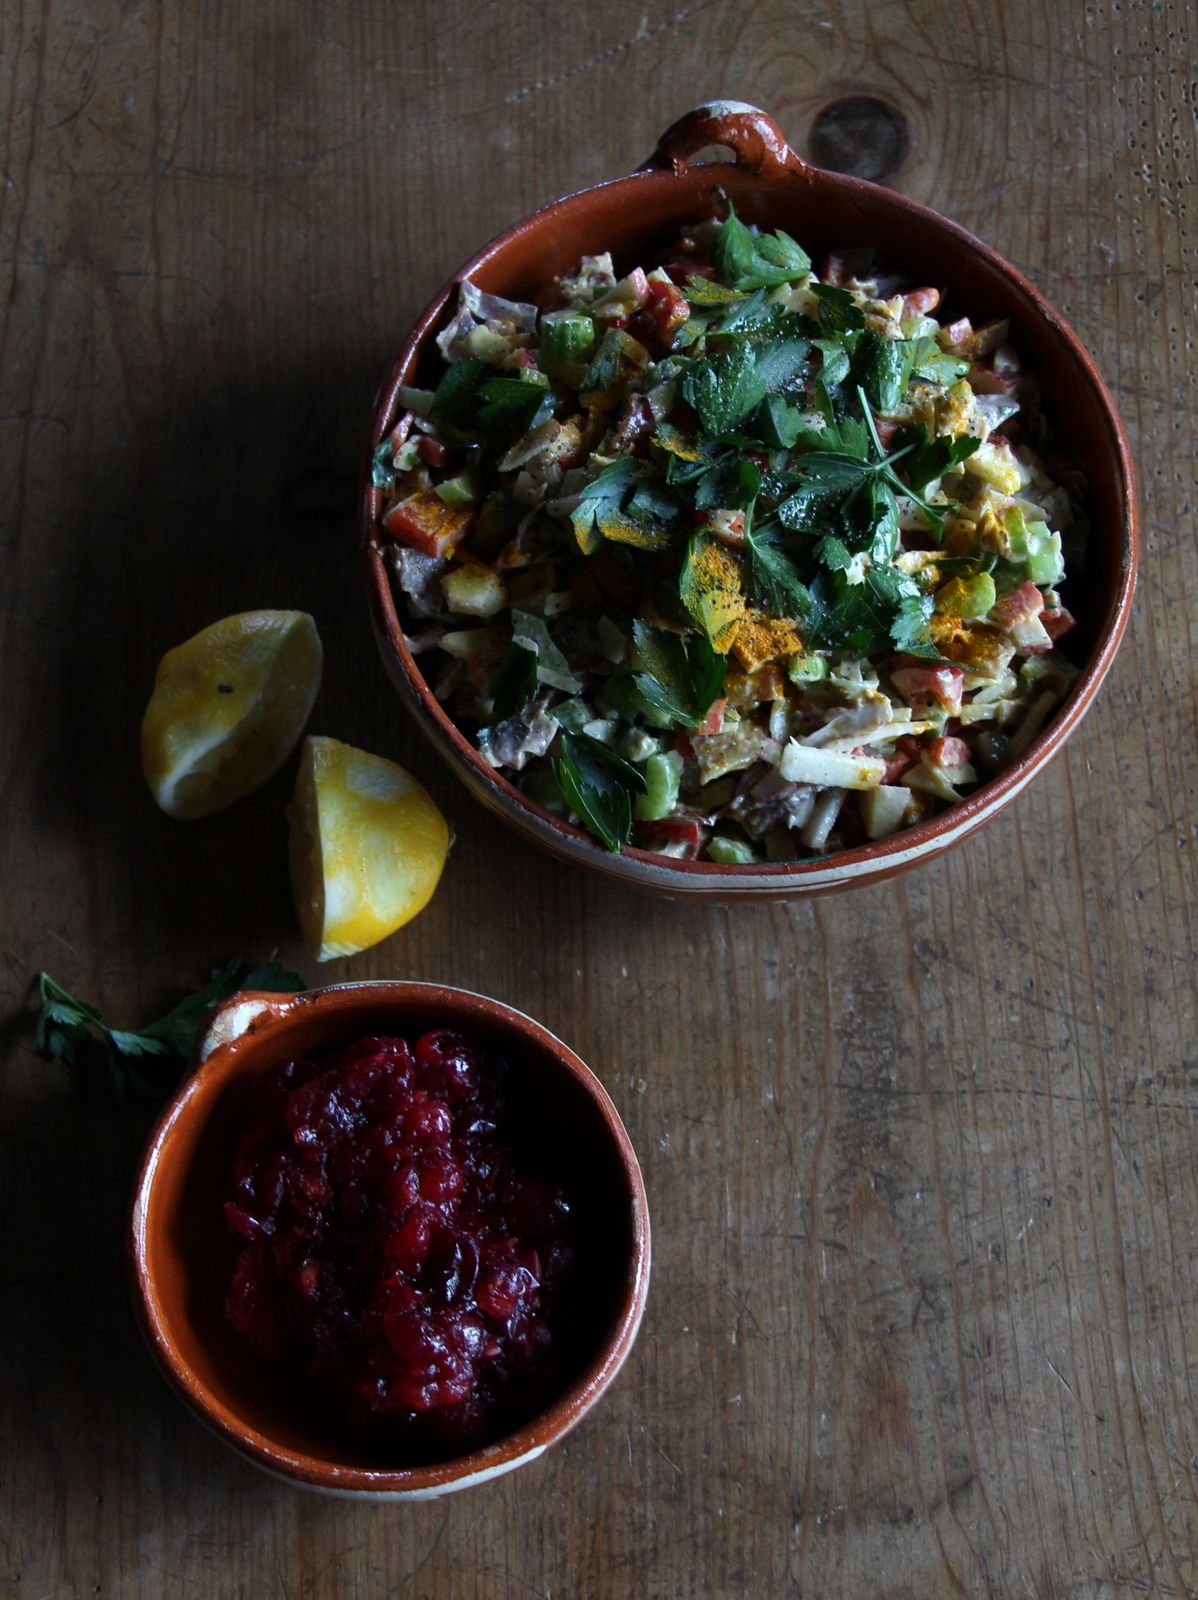 Smoked chicken salad with maple cranberry sauce